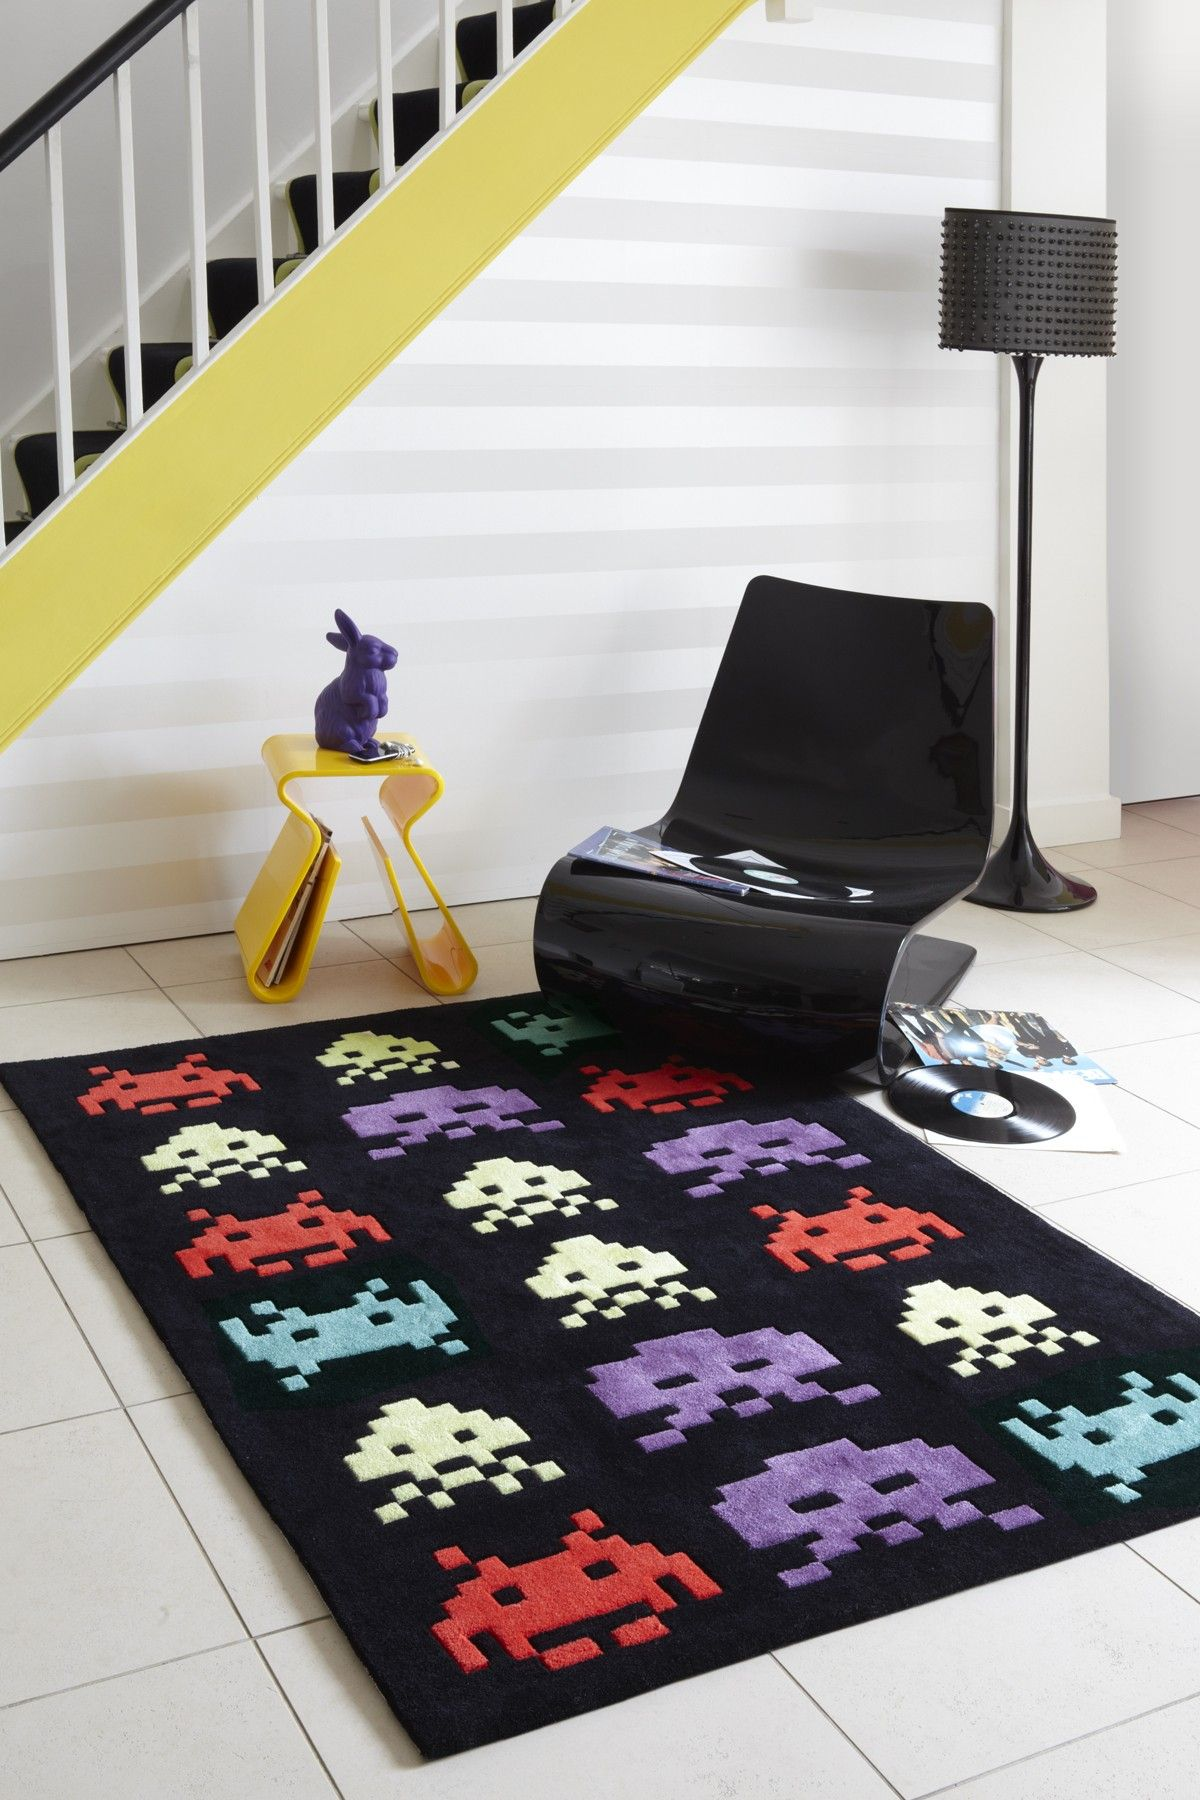 beauticious fluffy rug  space invaders fandom and spaces - fans